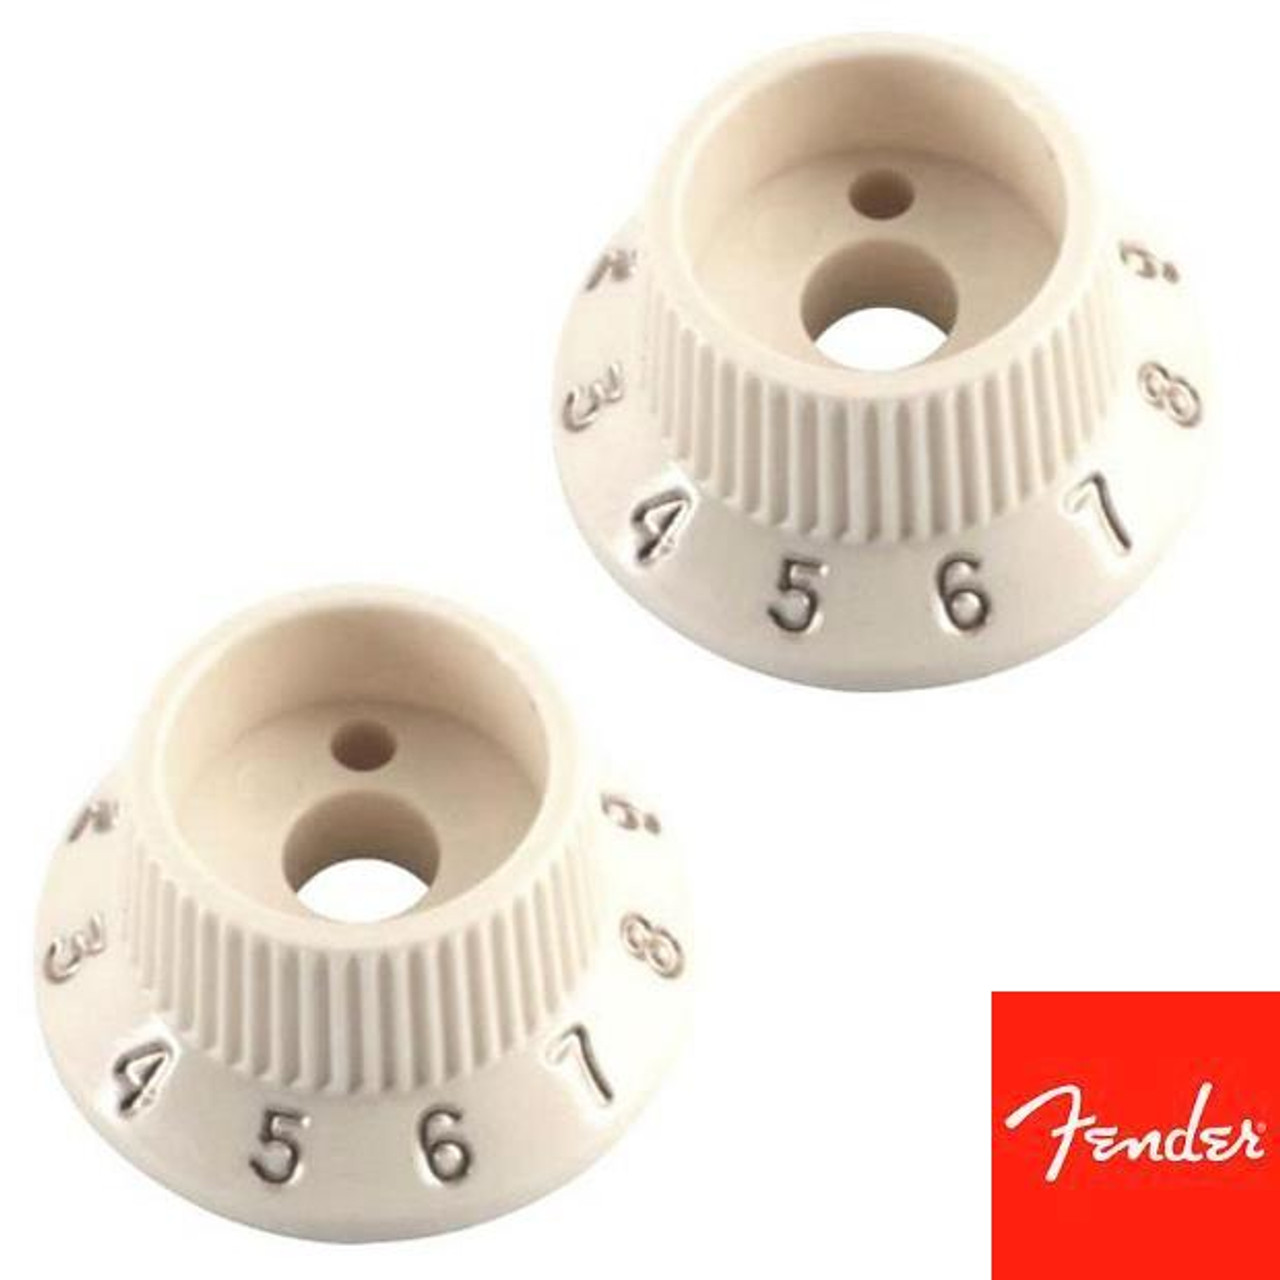 Fender Stratocaster S-1 Volume Pot Switch Knobs (2)-Parchment